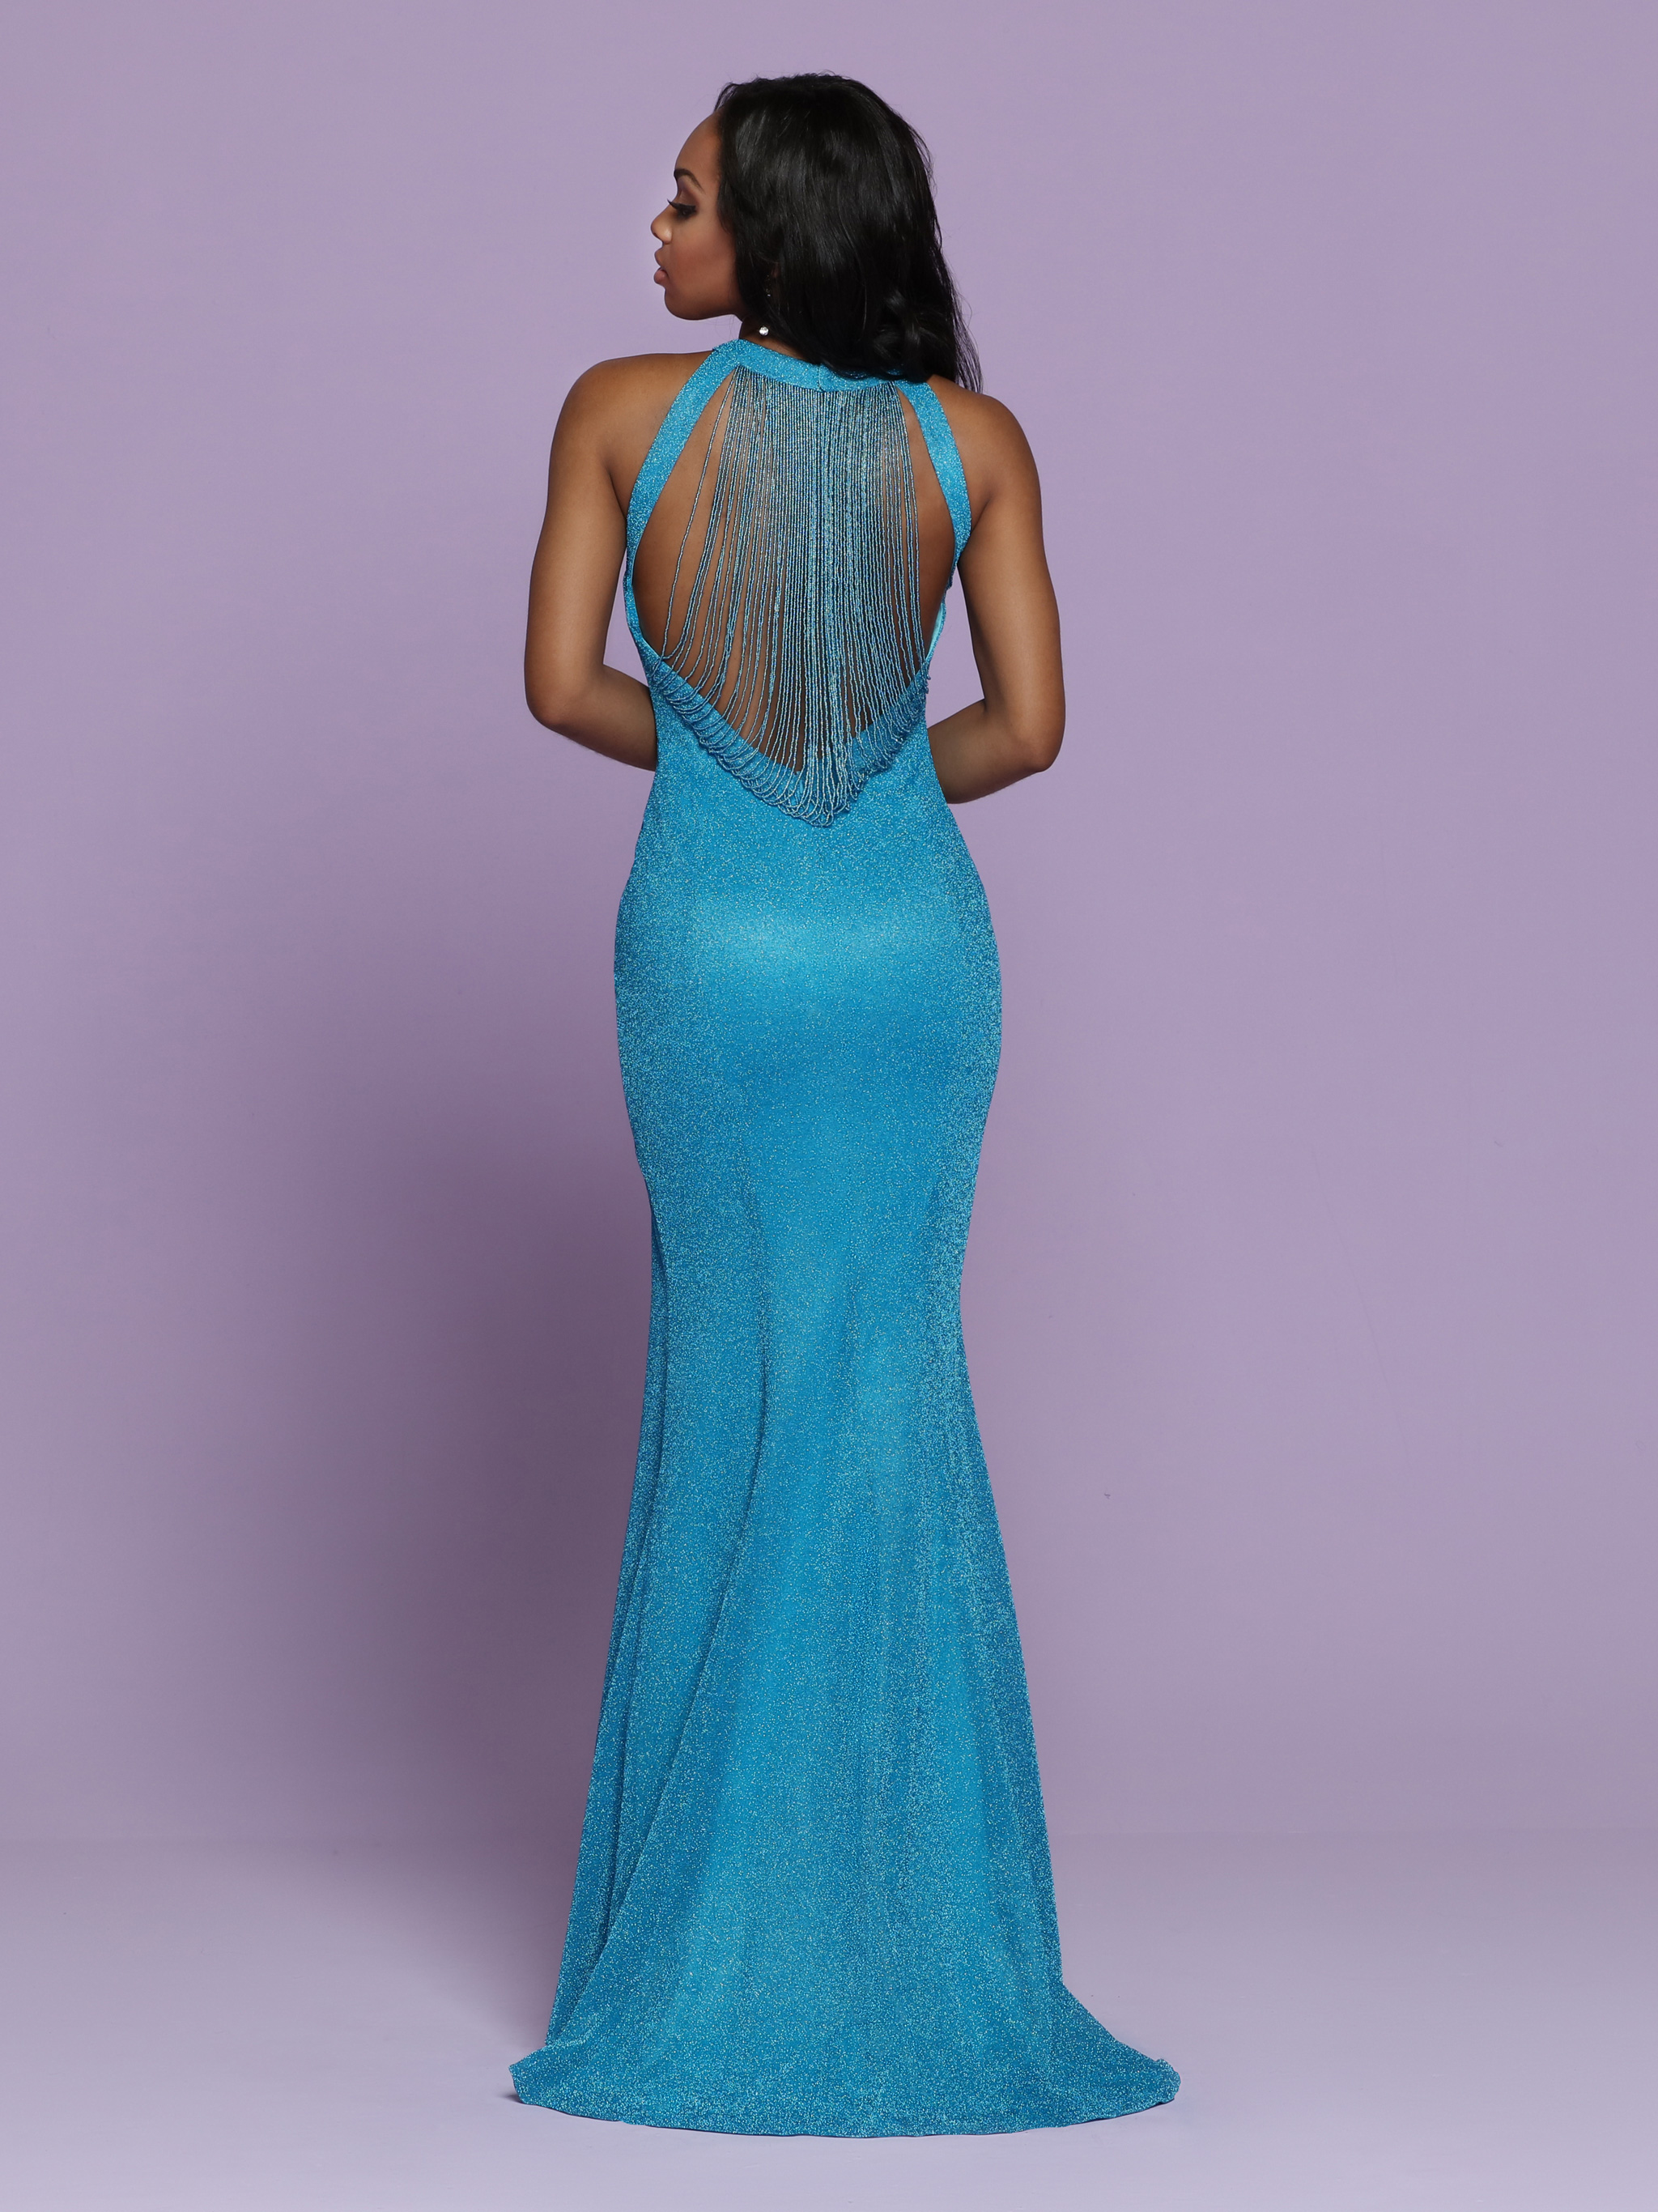 Image showing back view of style #72039